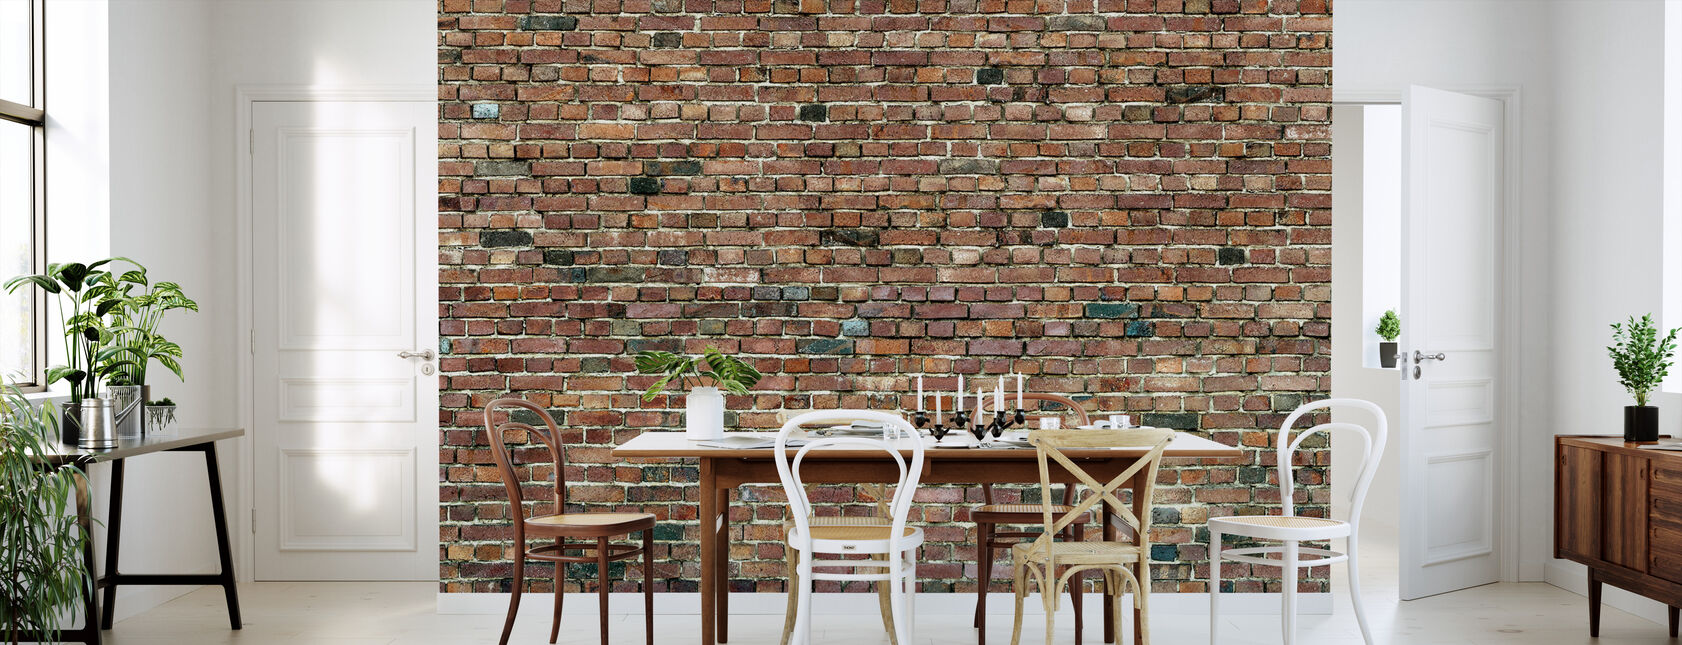 Stockholm Brick Wall - Wallpaper - Kitchen